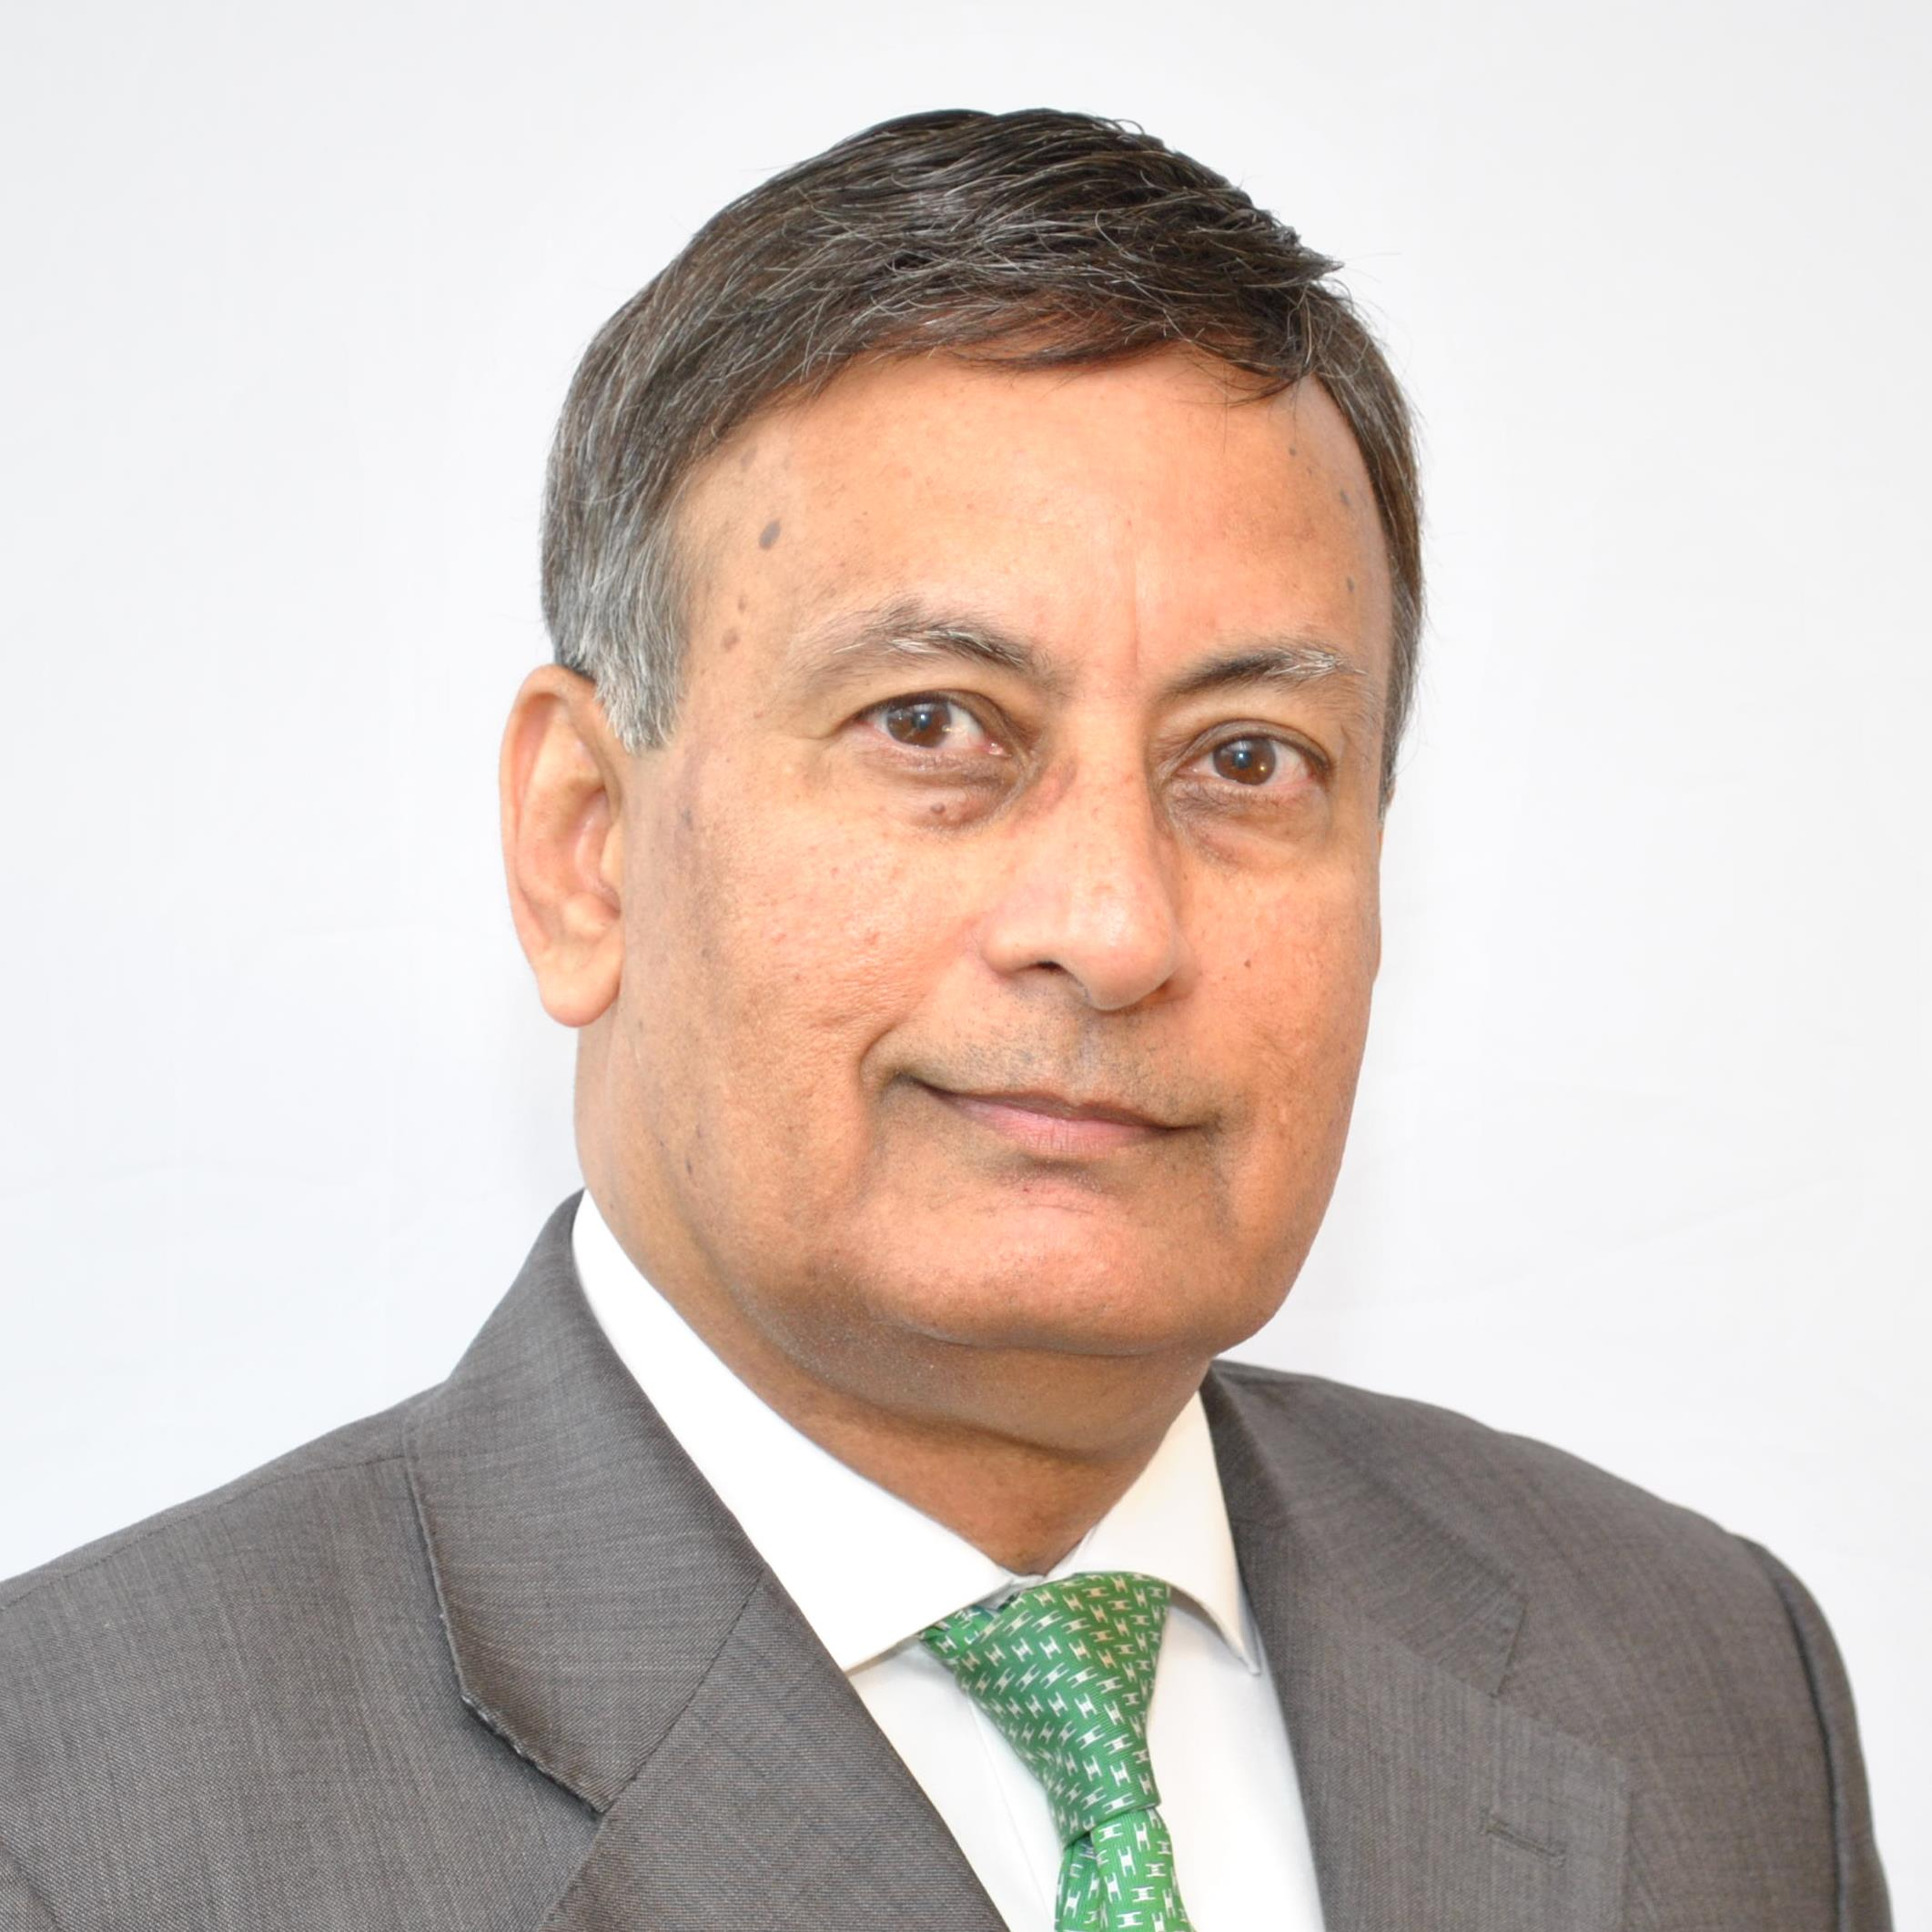 Amb. Hussain Haqqani, Senior Fellow and Director for South & Central Asia, Hudson Institute